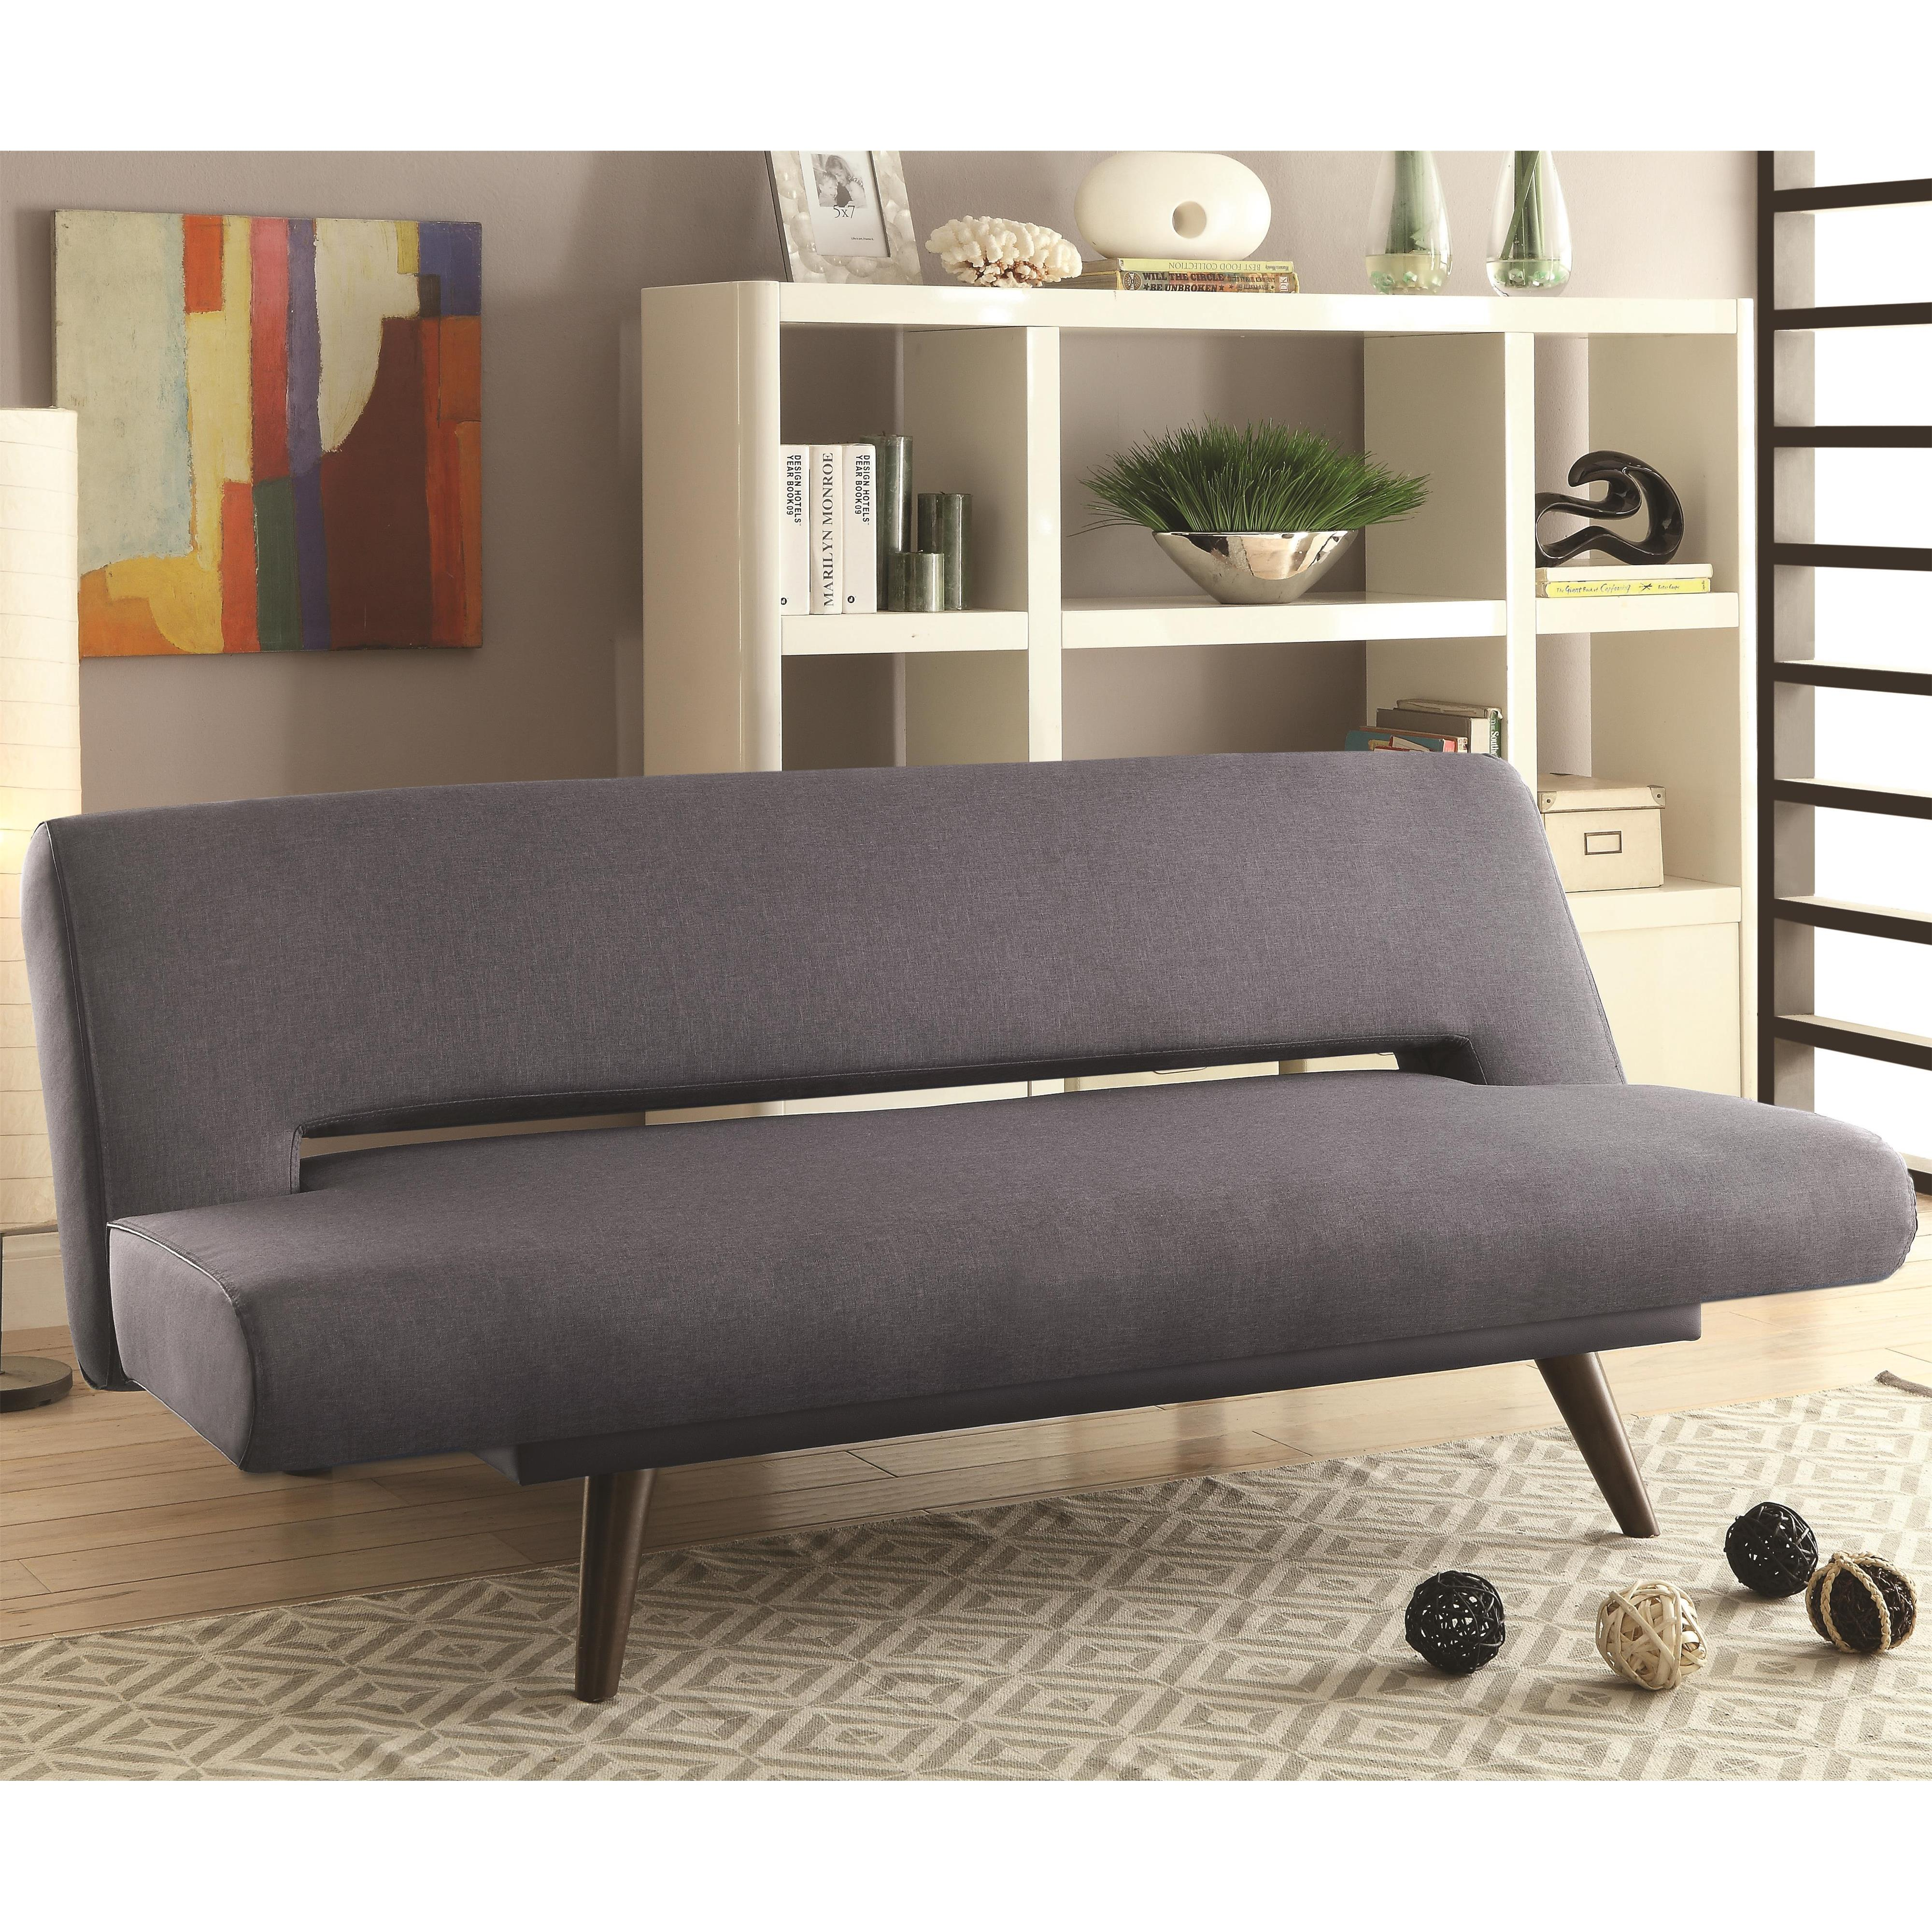 coasters sofa bed extra large u shaped sectional sofas coaster beds and futons mid century modern adjustable